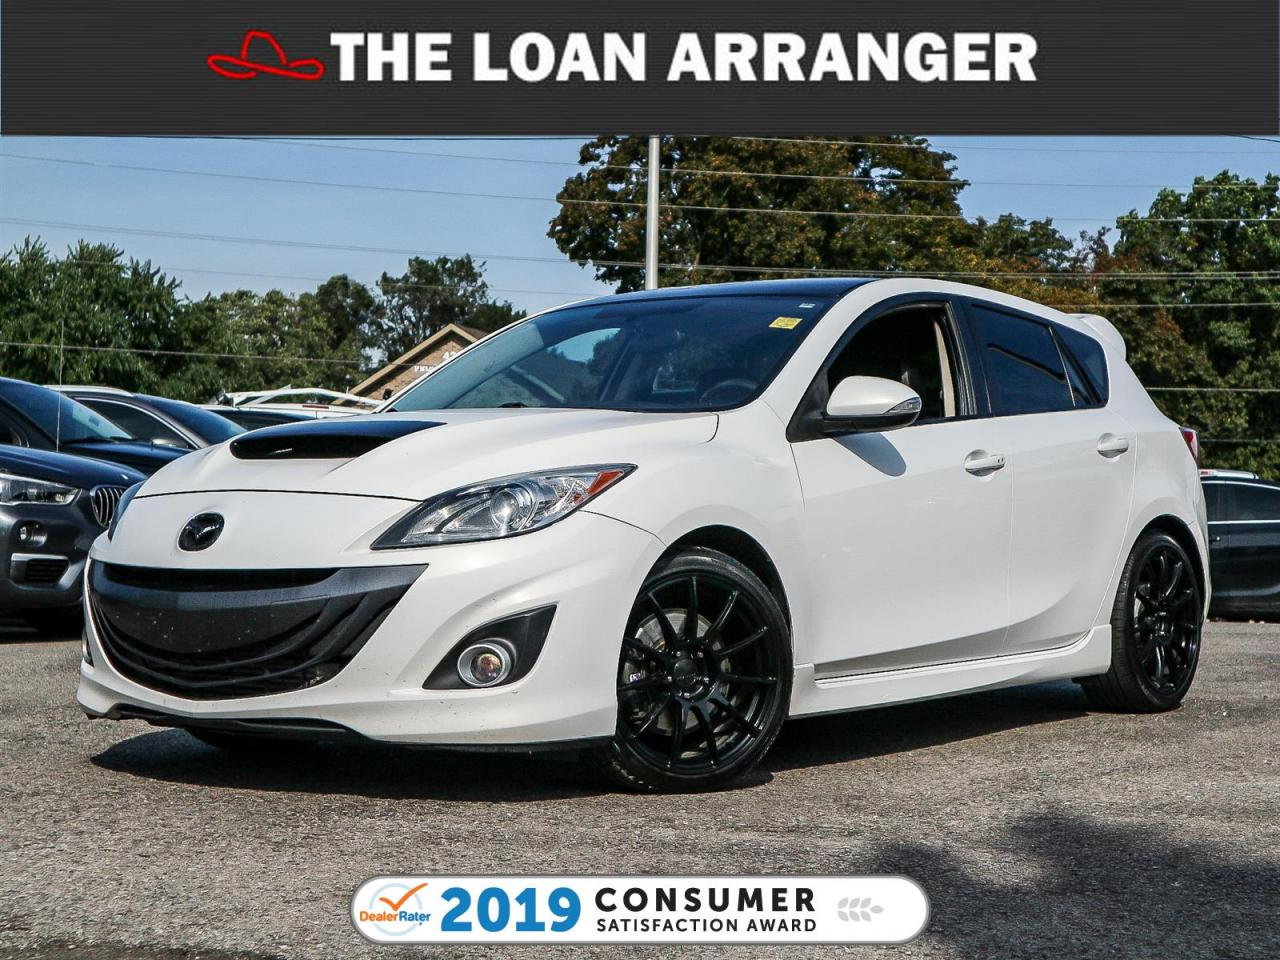 Mazdaspeed3 For Sale >> Used 2010 Mazda Mazdaspeed3 For Sale In Barrie Ontario